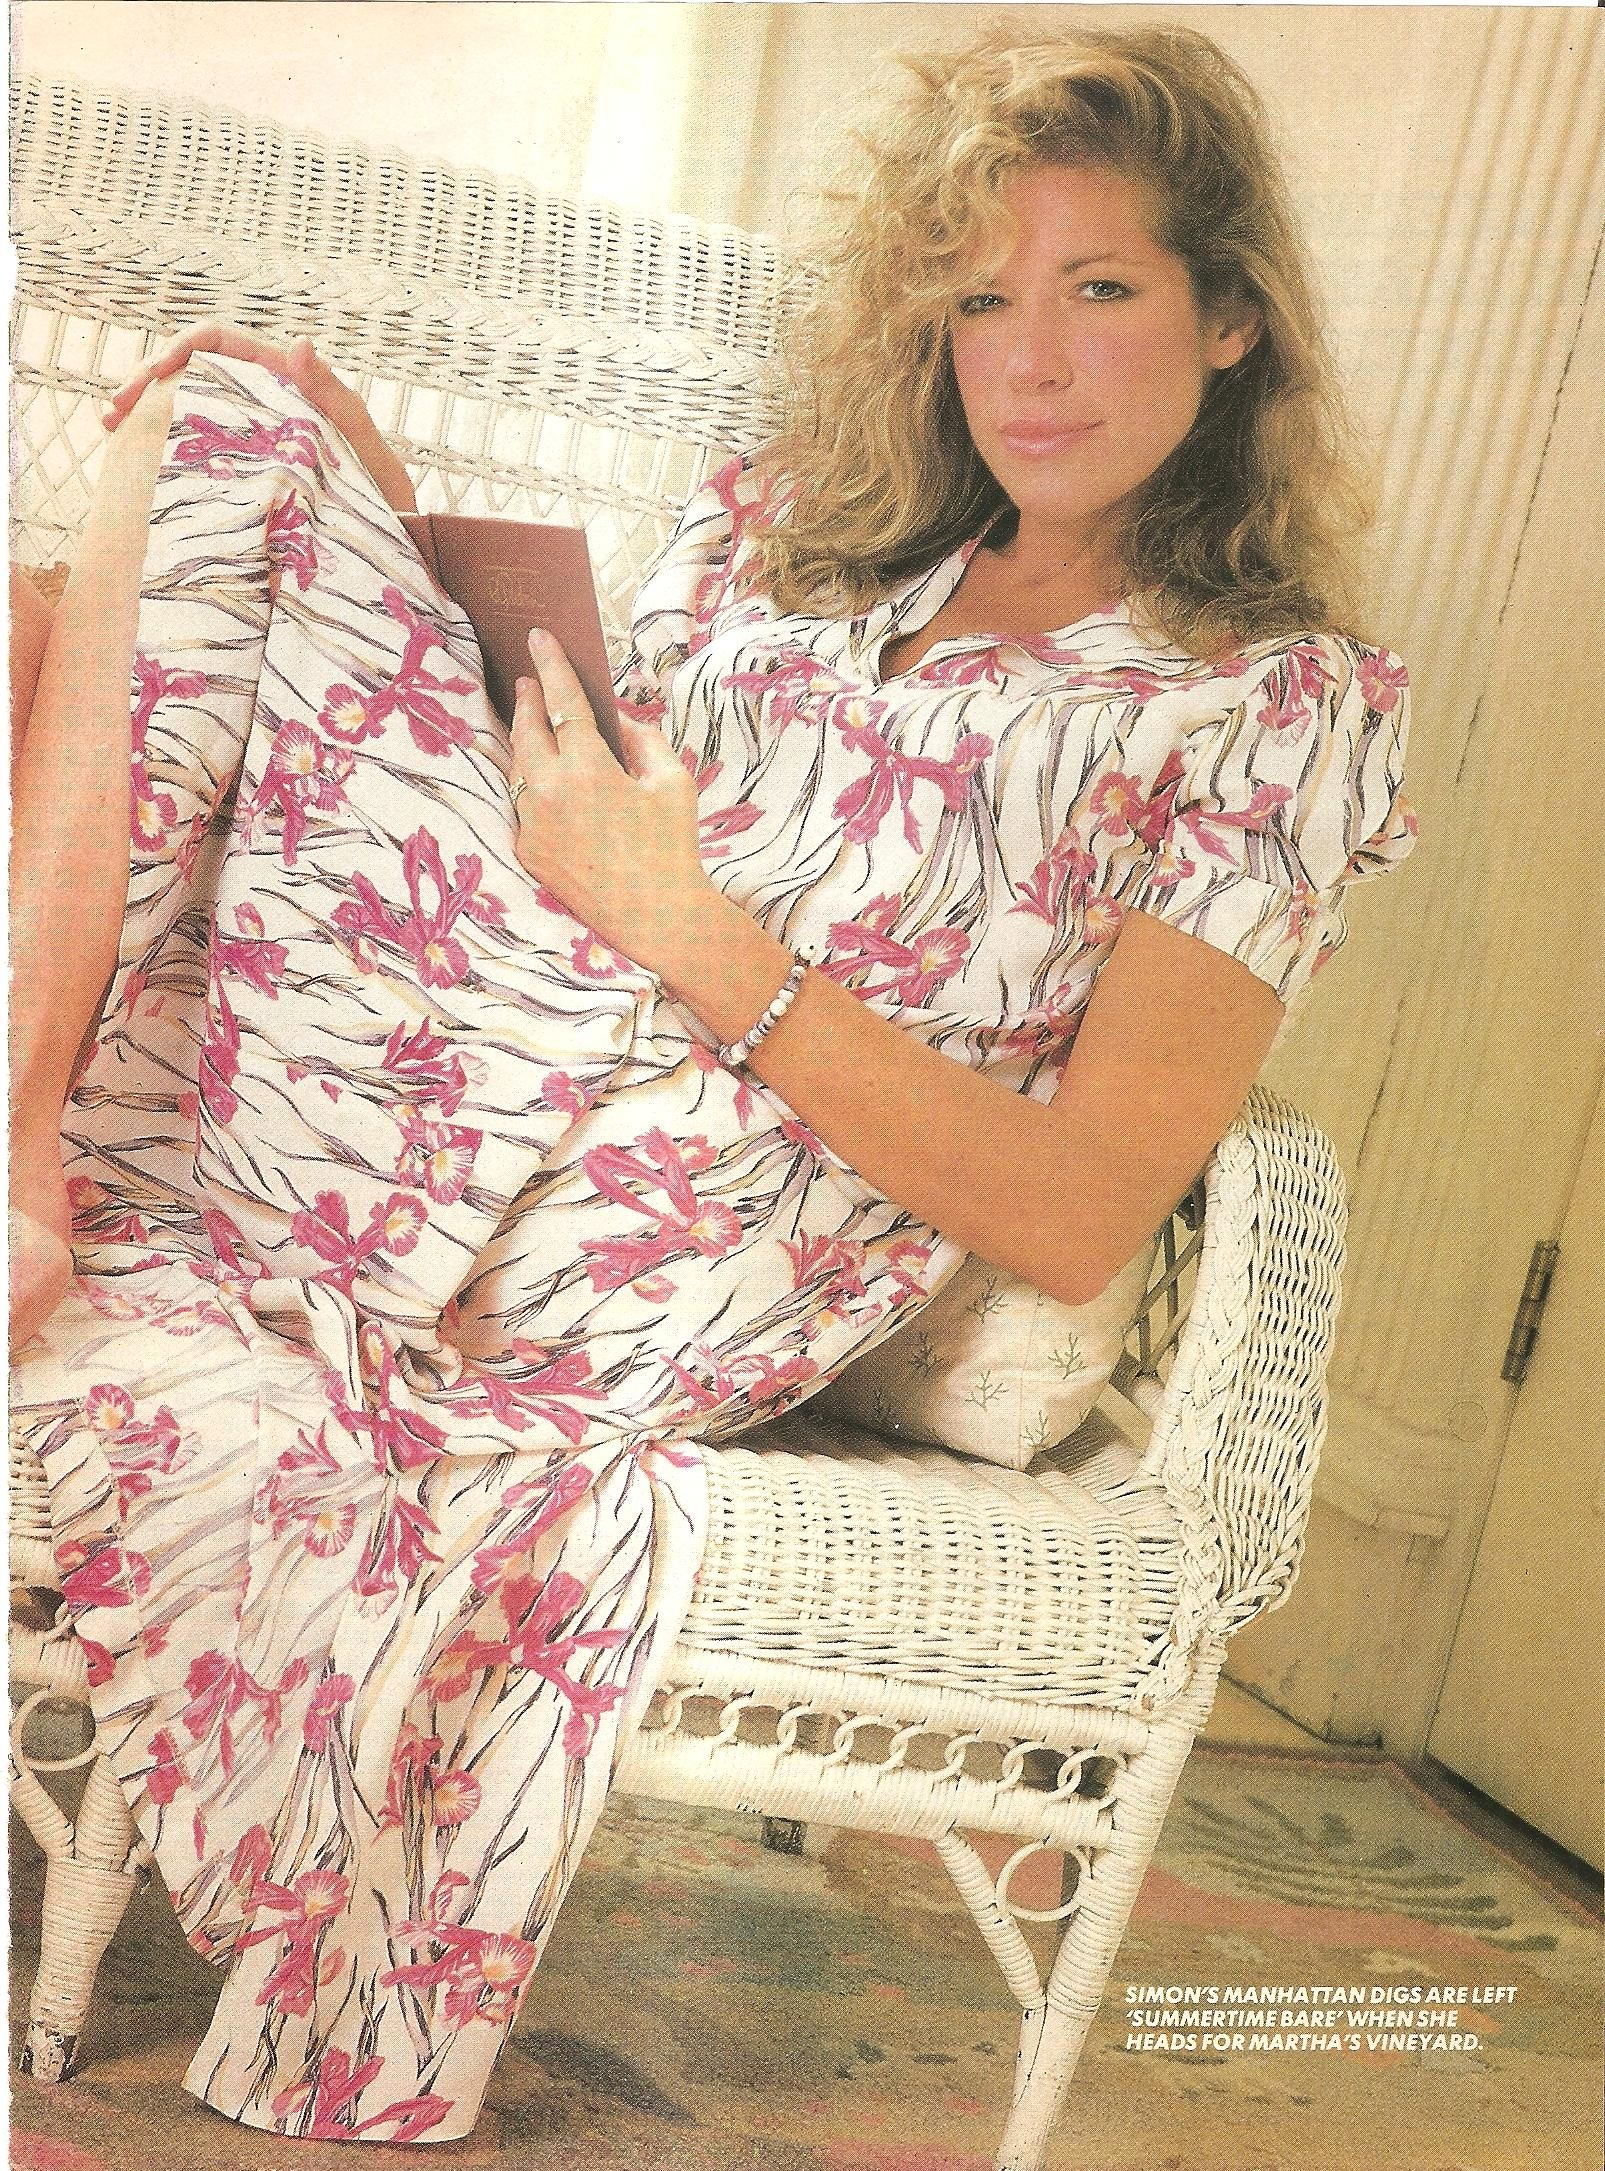 Carly Simon sitting in wicker, wearing a dress, reading a book in photo from US magazine Aug 26 1985